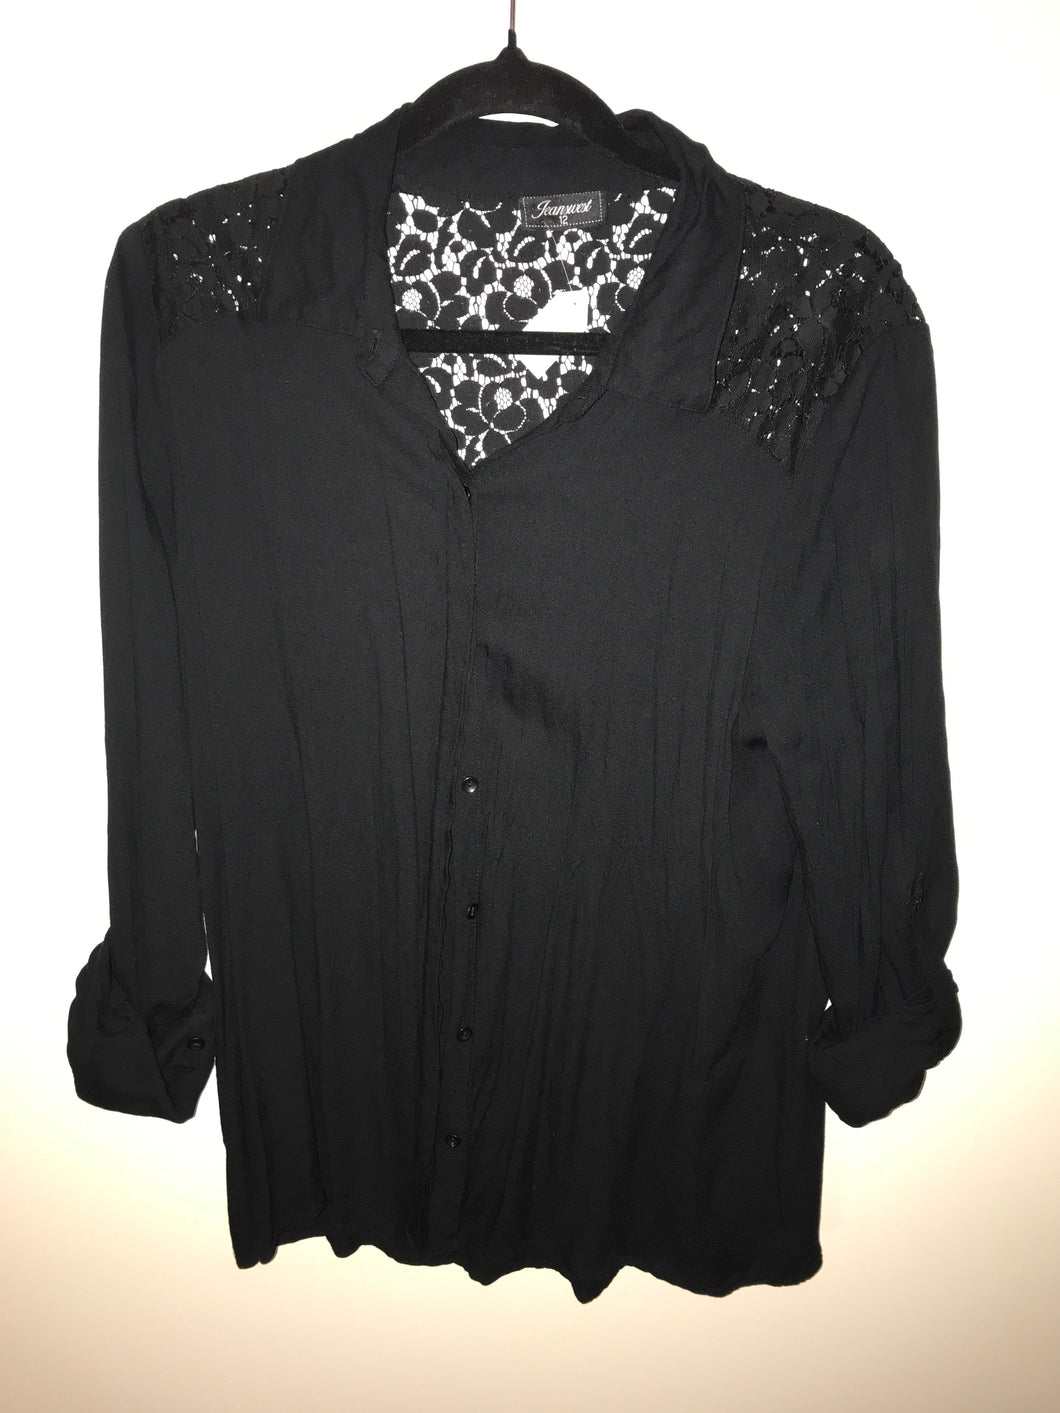 Jeanswest black lace blouse Size 12